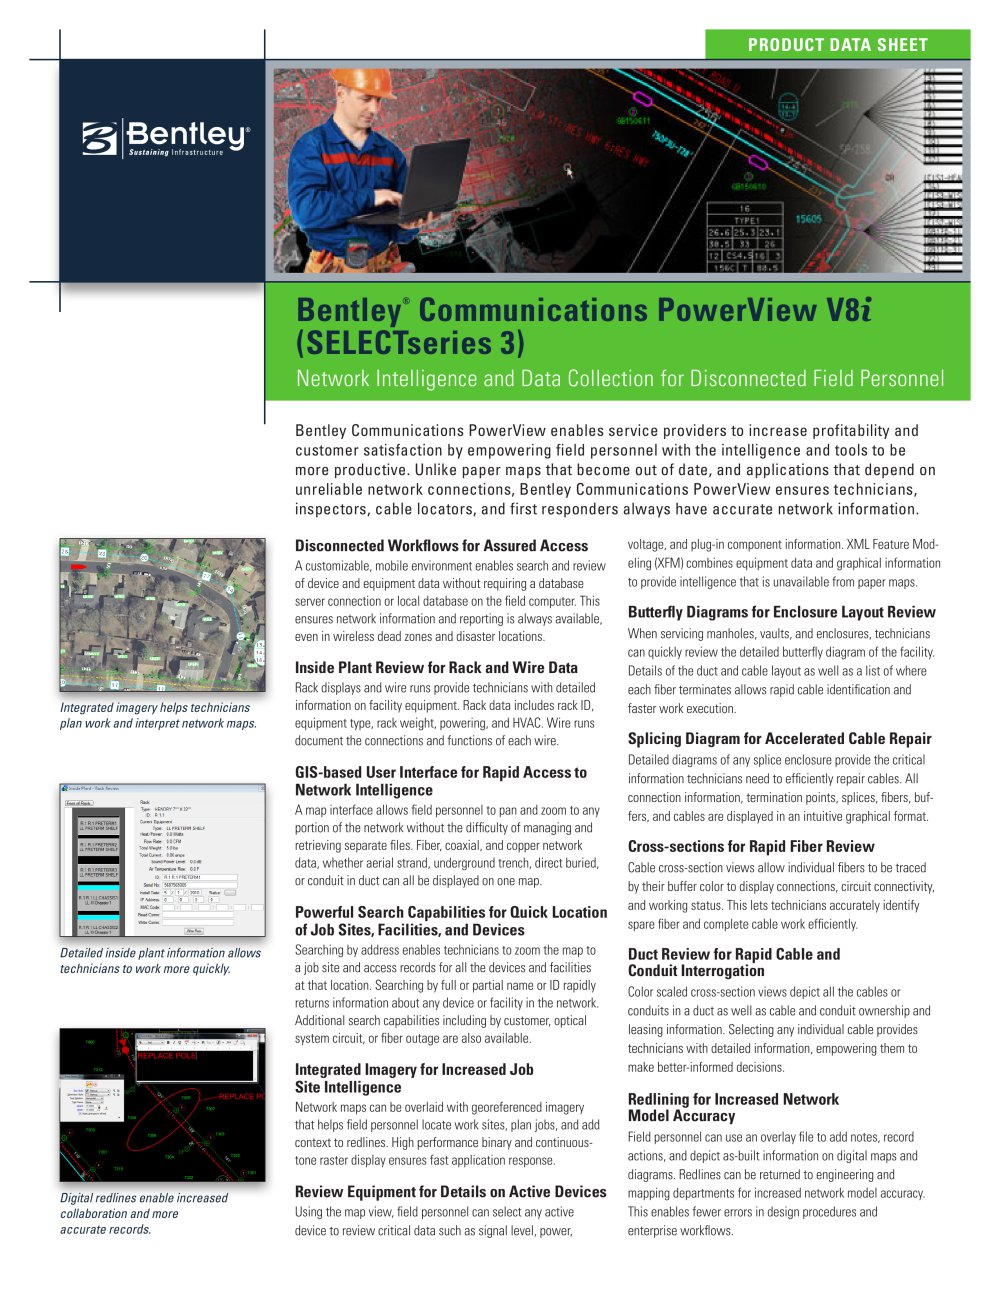 Bentley communications powerview v8i 1 2 pages